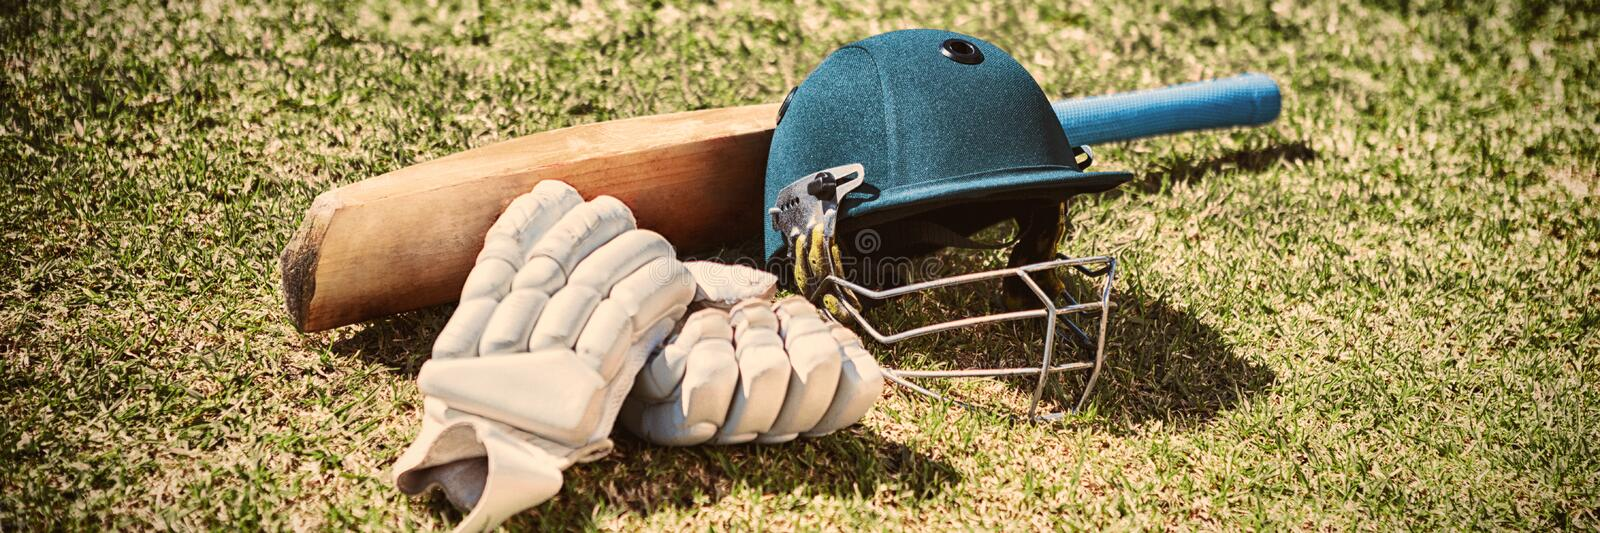 High angle view of cricket equipment on field royalty free stock photo